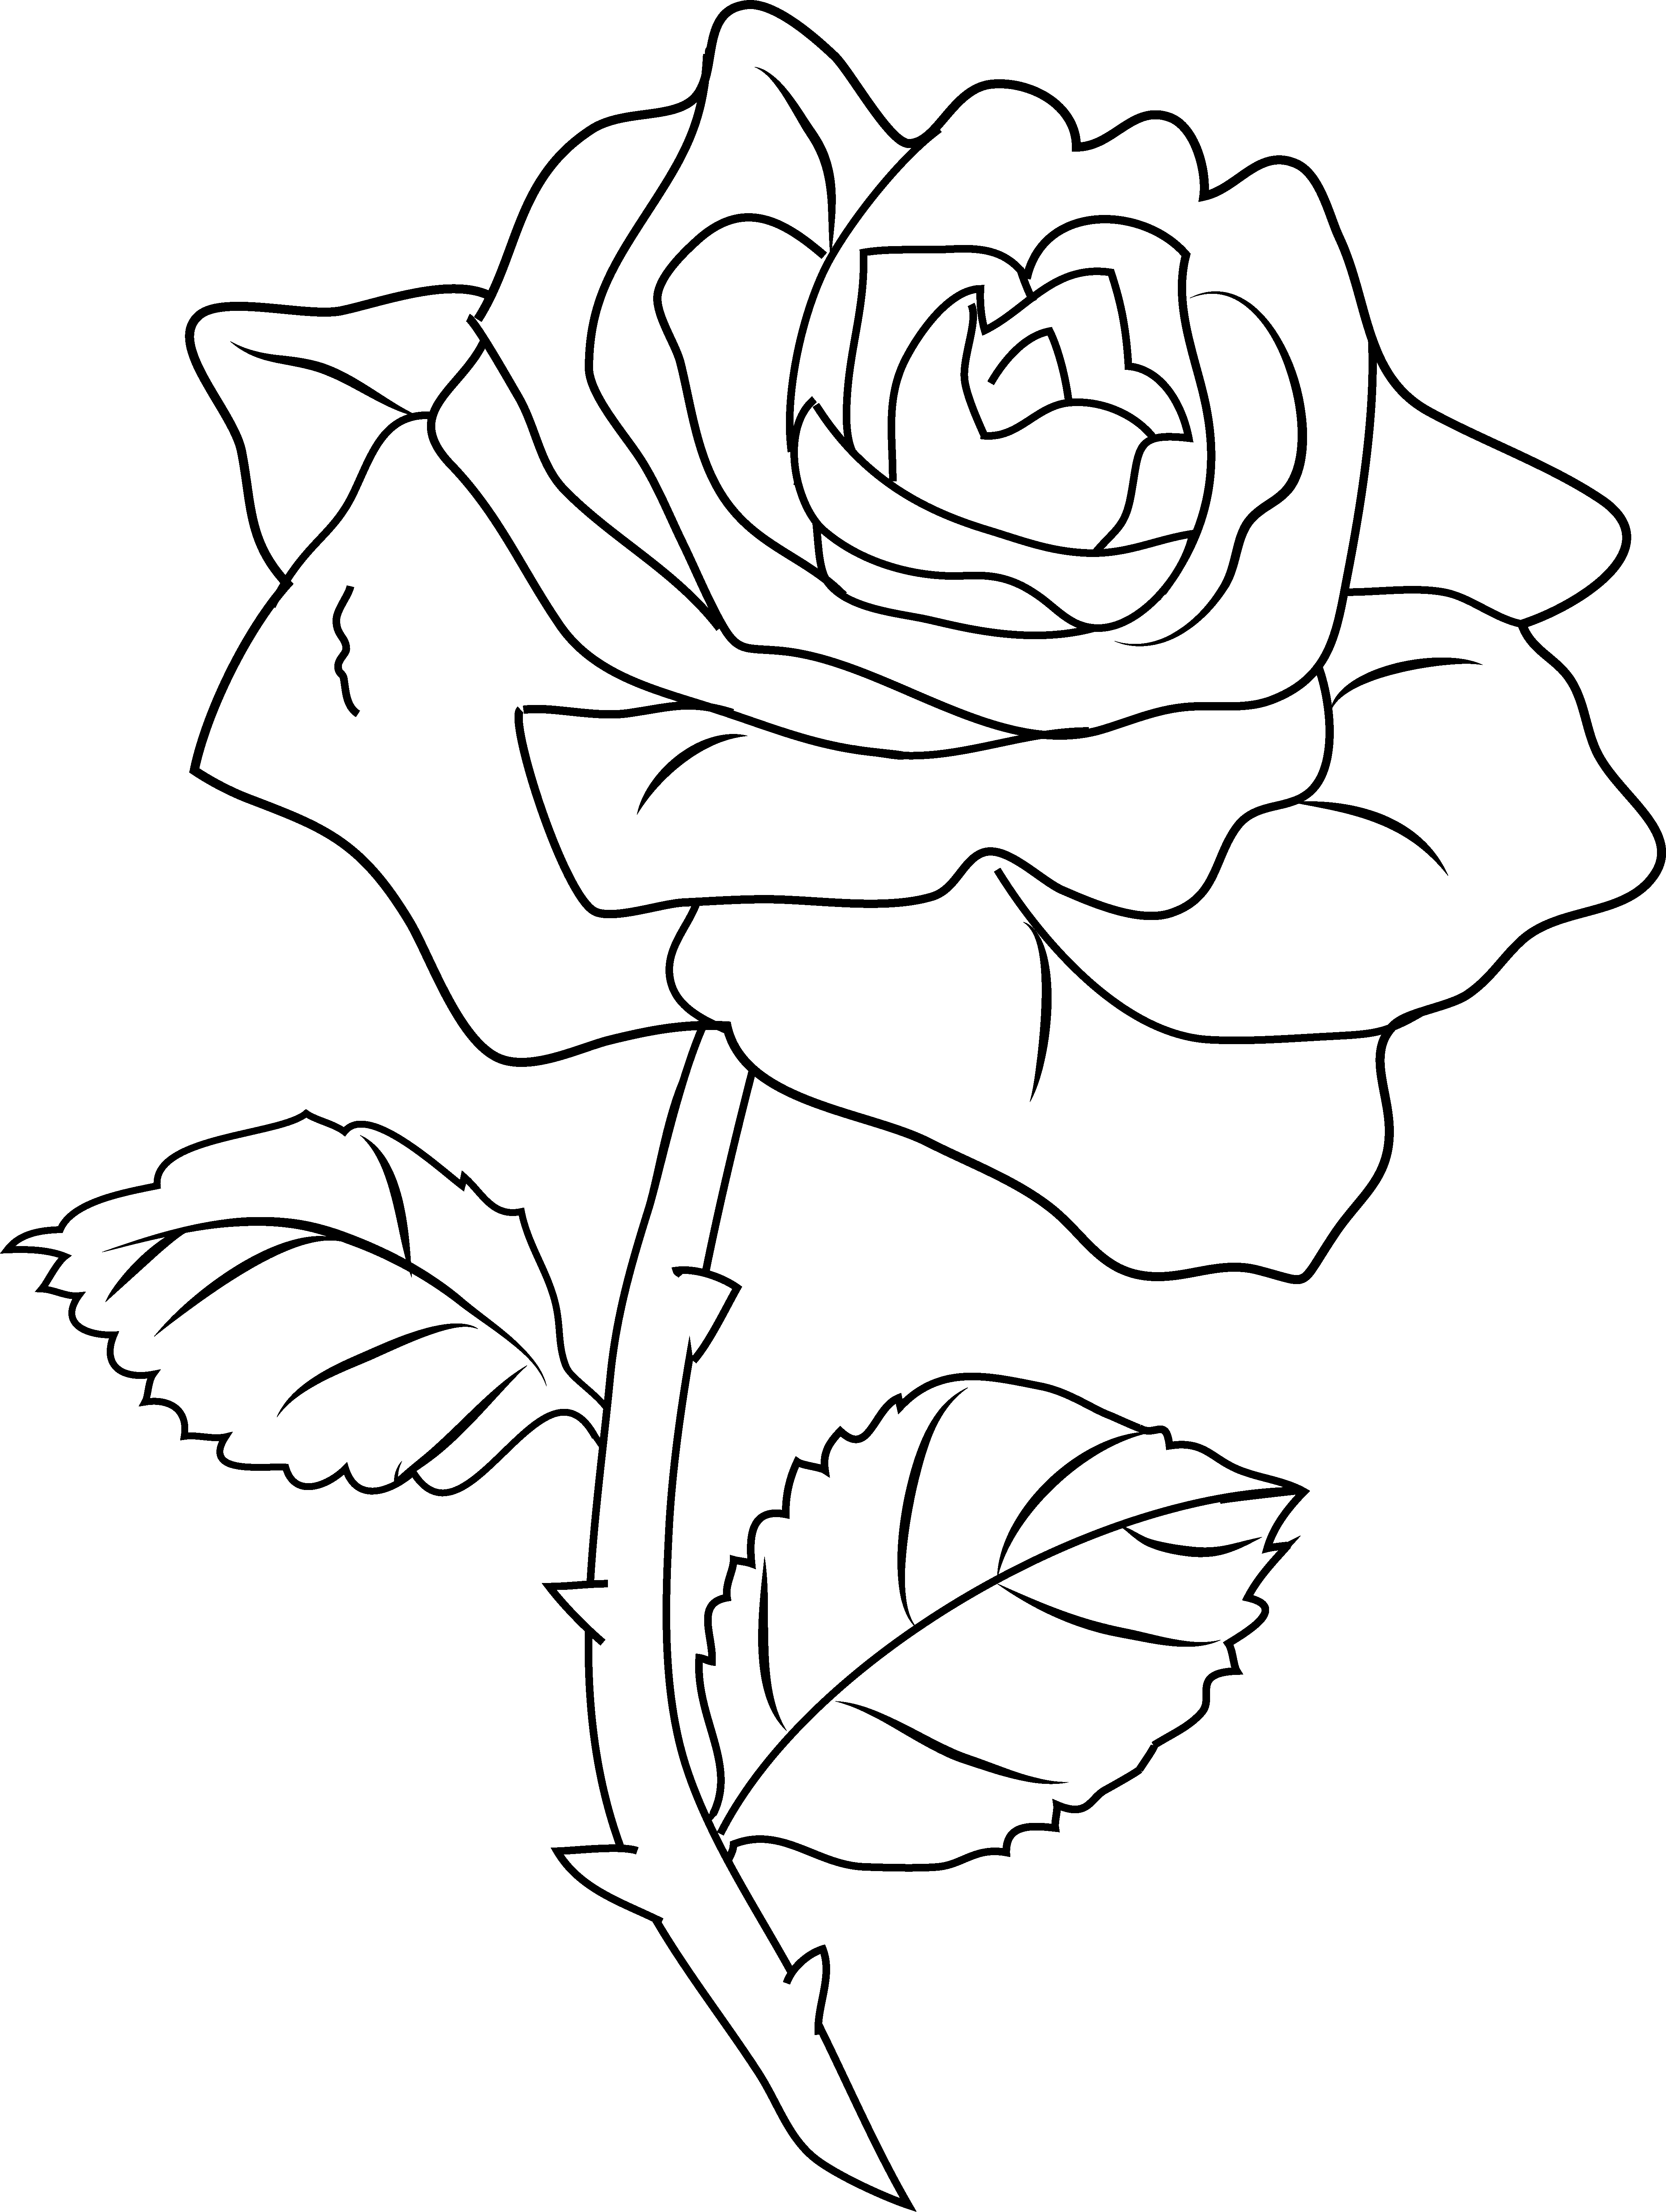 flowers outlines for colouring rose color clipart 20 free cliparts download images on for flowers outlines colouring